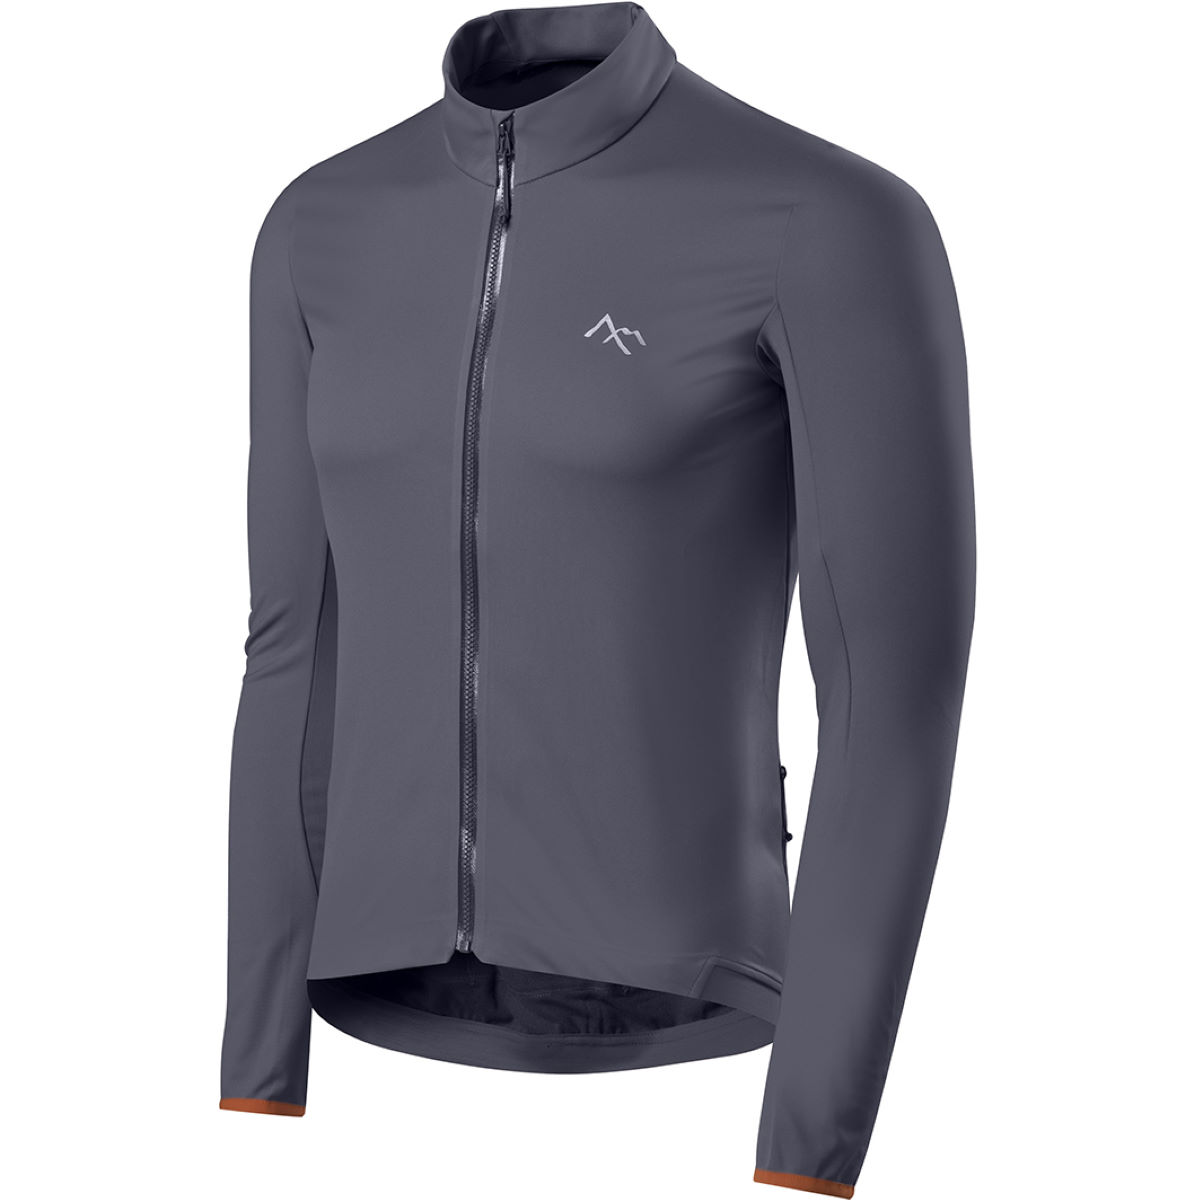 Maillot 7Mesh Synergy (manches longues) - XL Ash